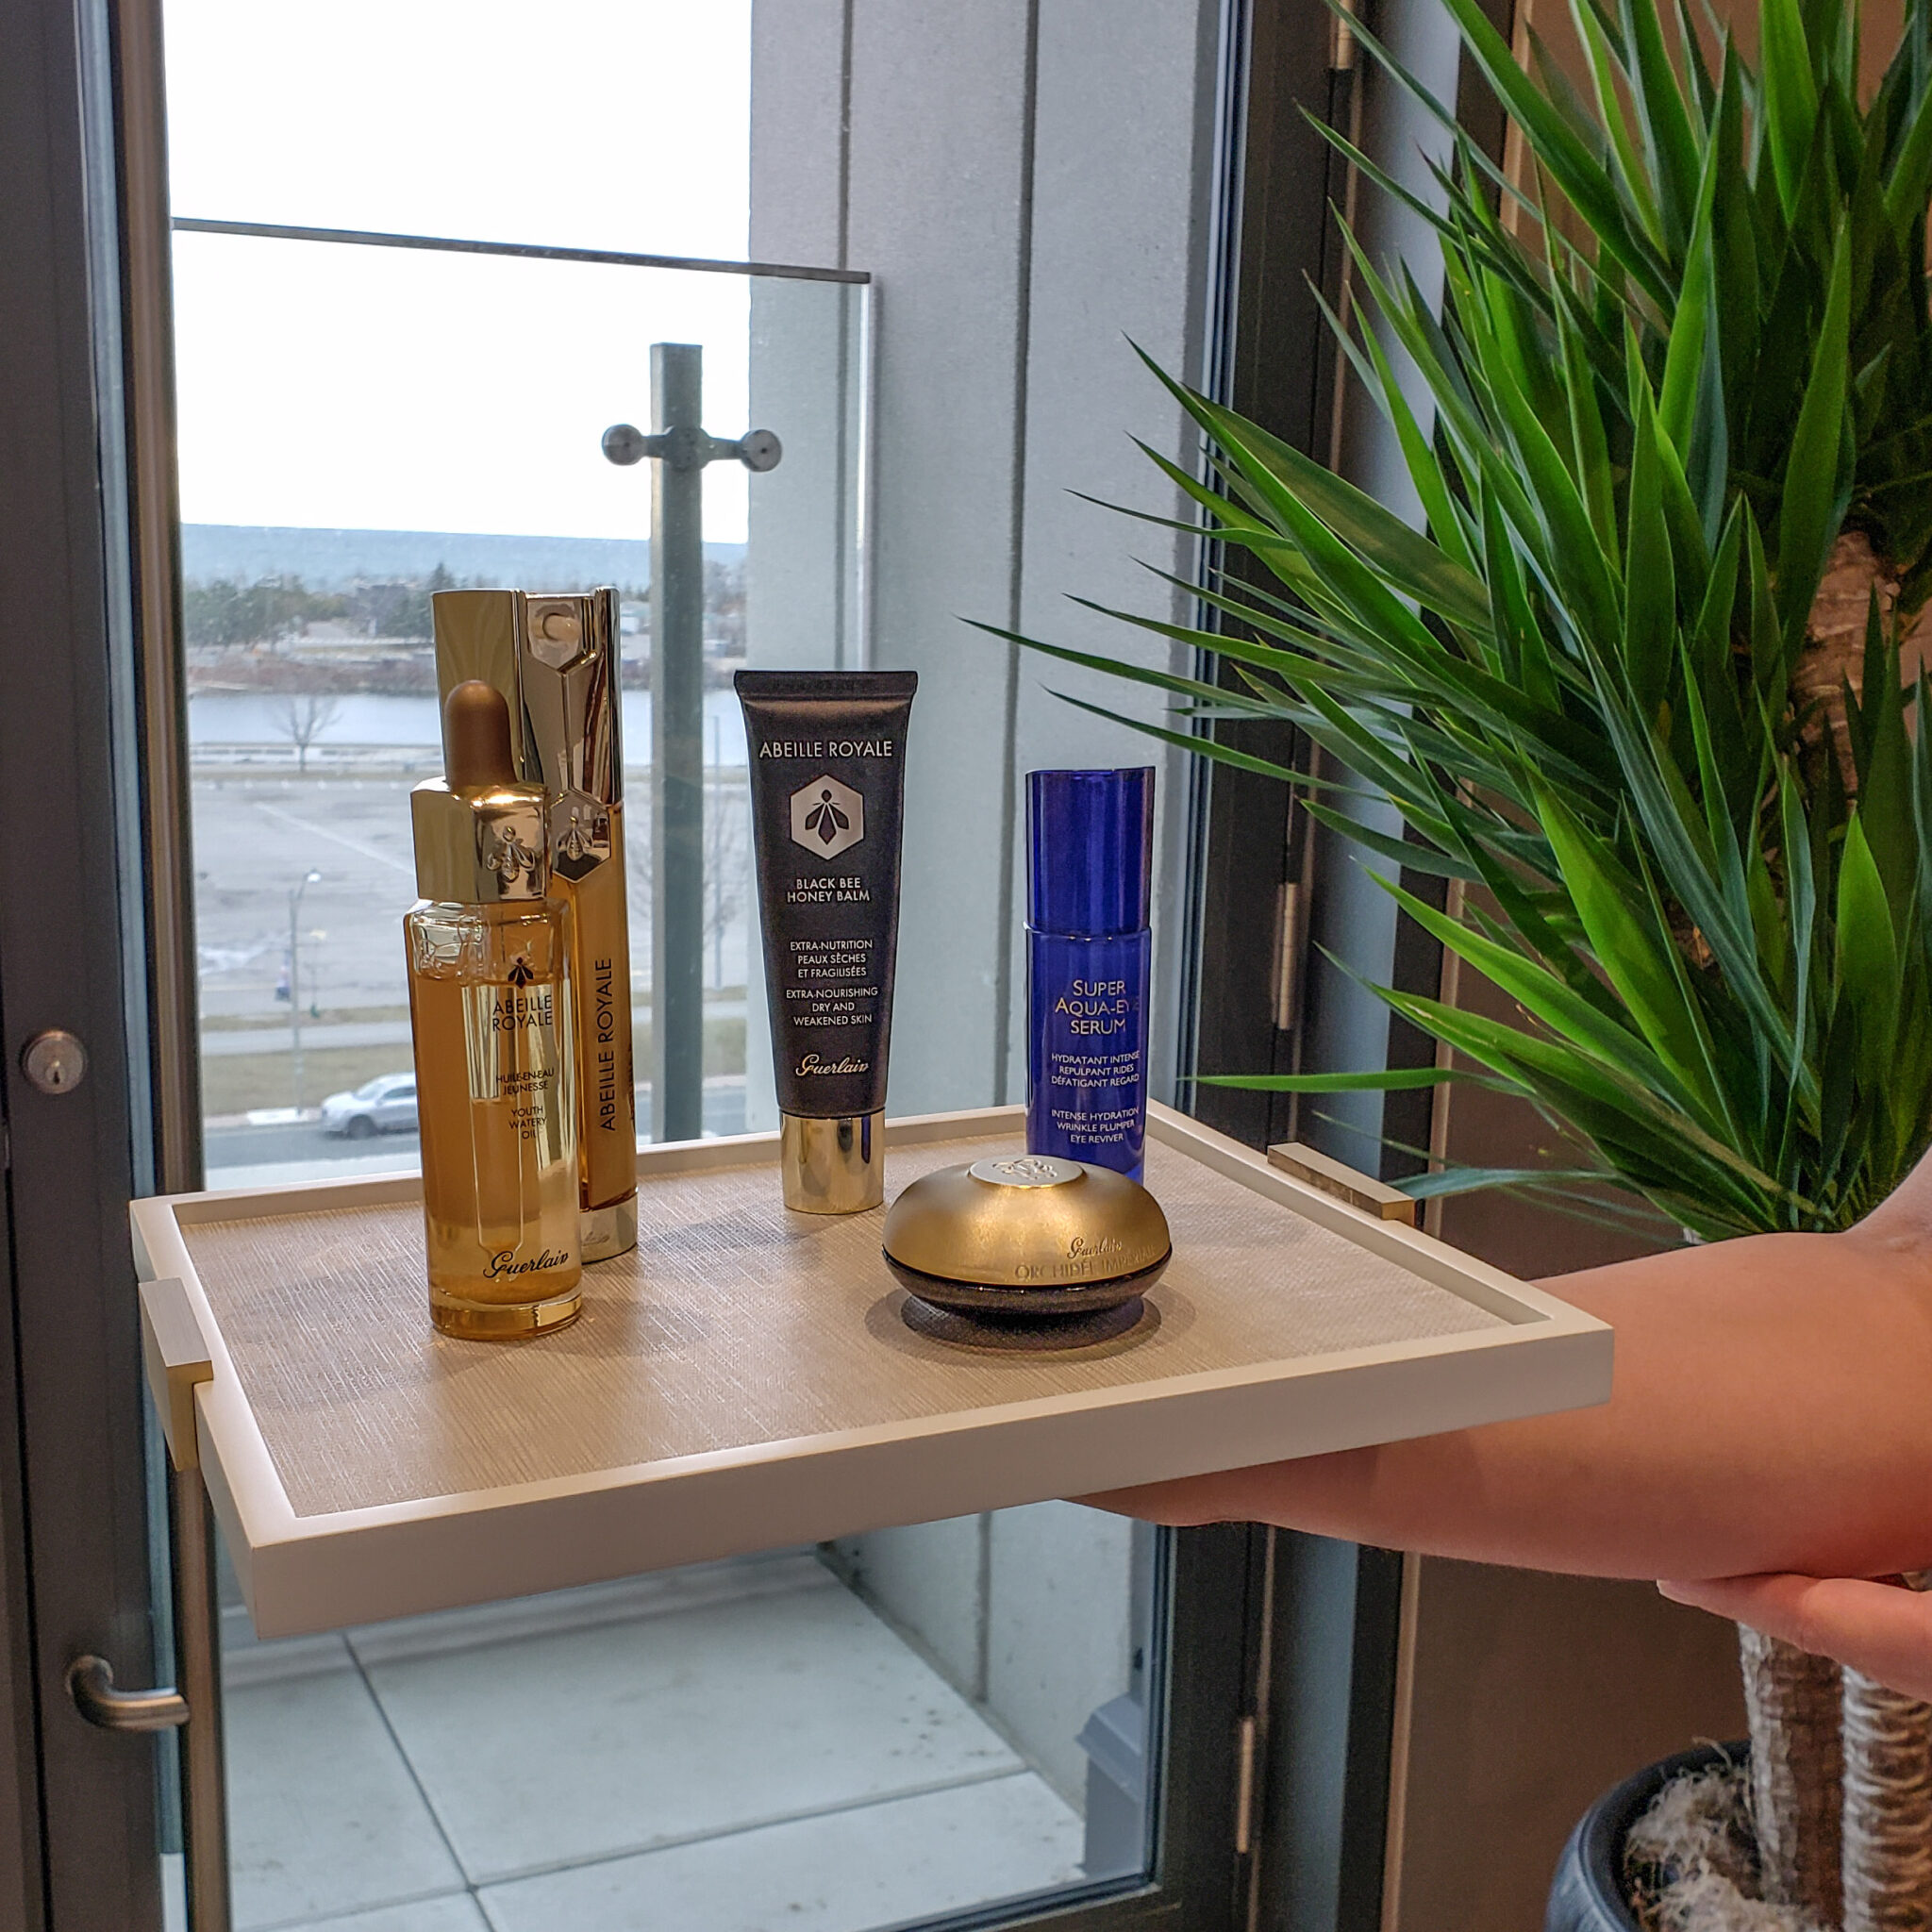 Hotel X Toronto - Luxury Resort - Guerlain Spa - Exclusive Products